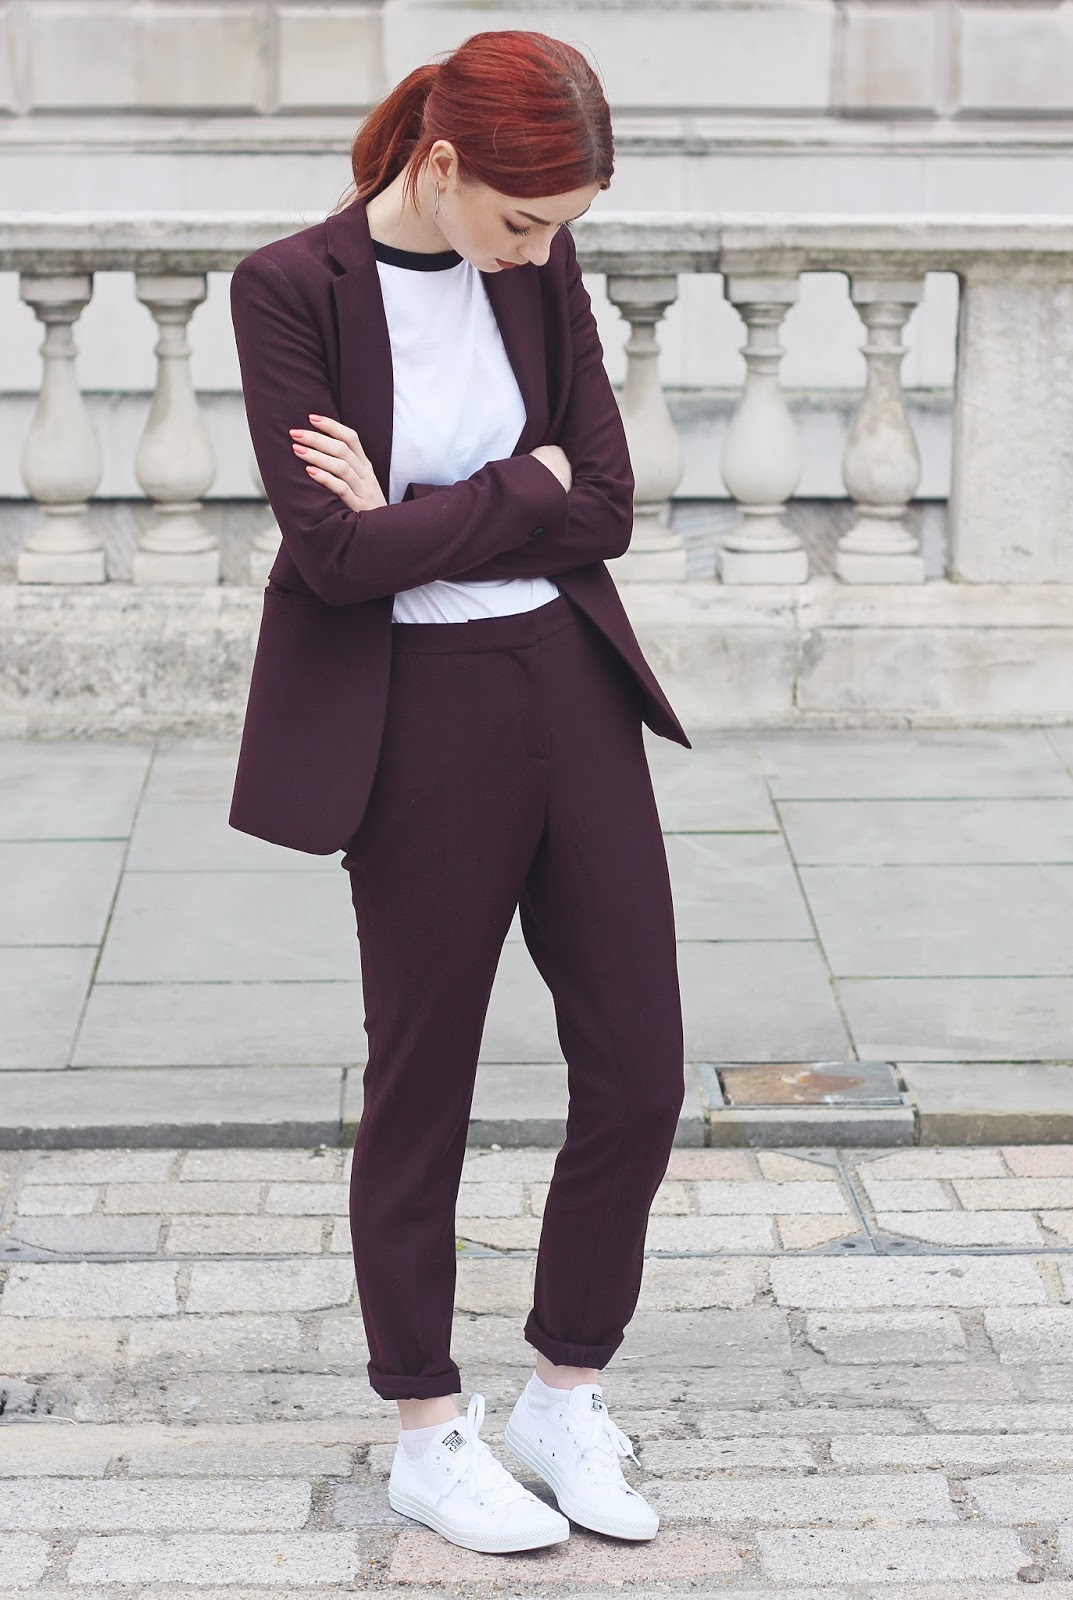 burgundy berry suit